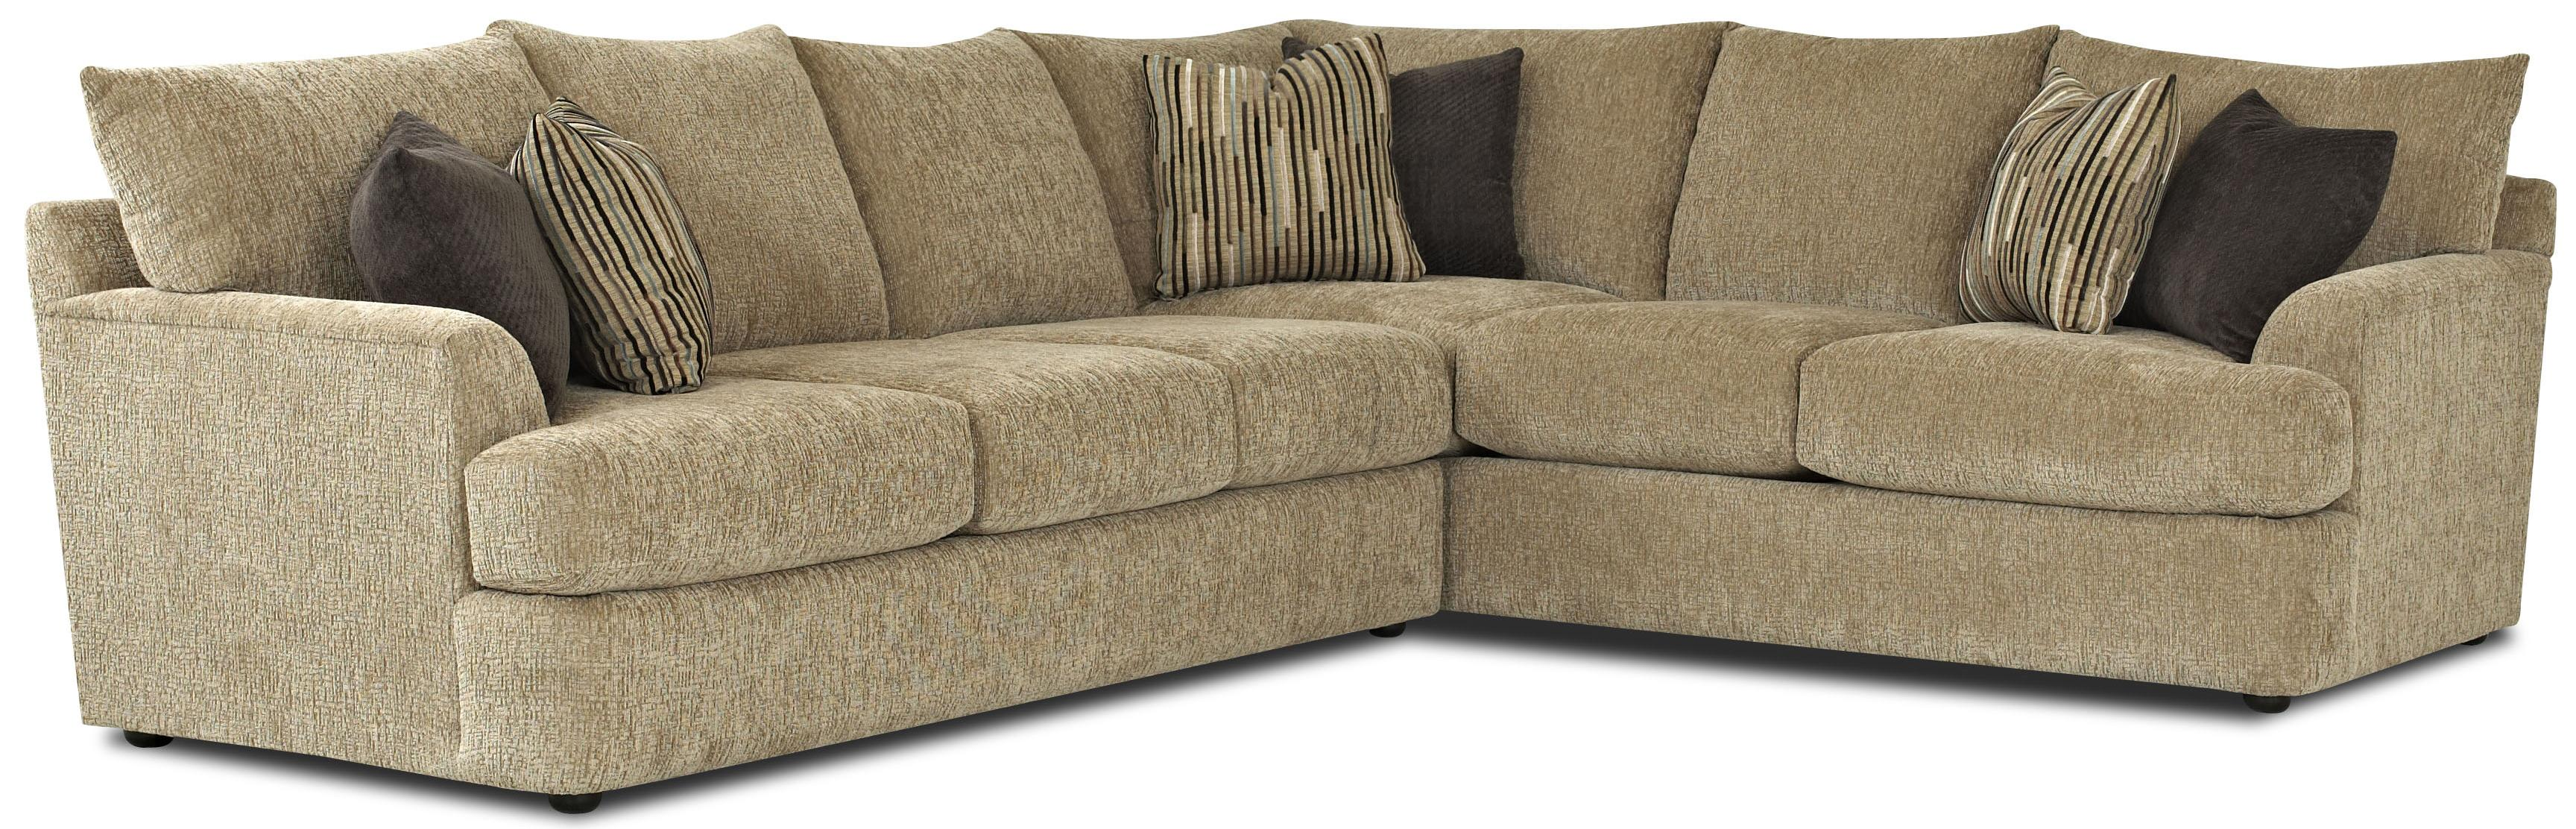 Contemprary L Shaped Sectional Sofa